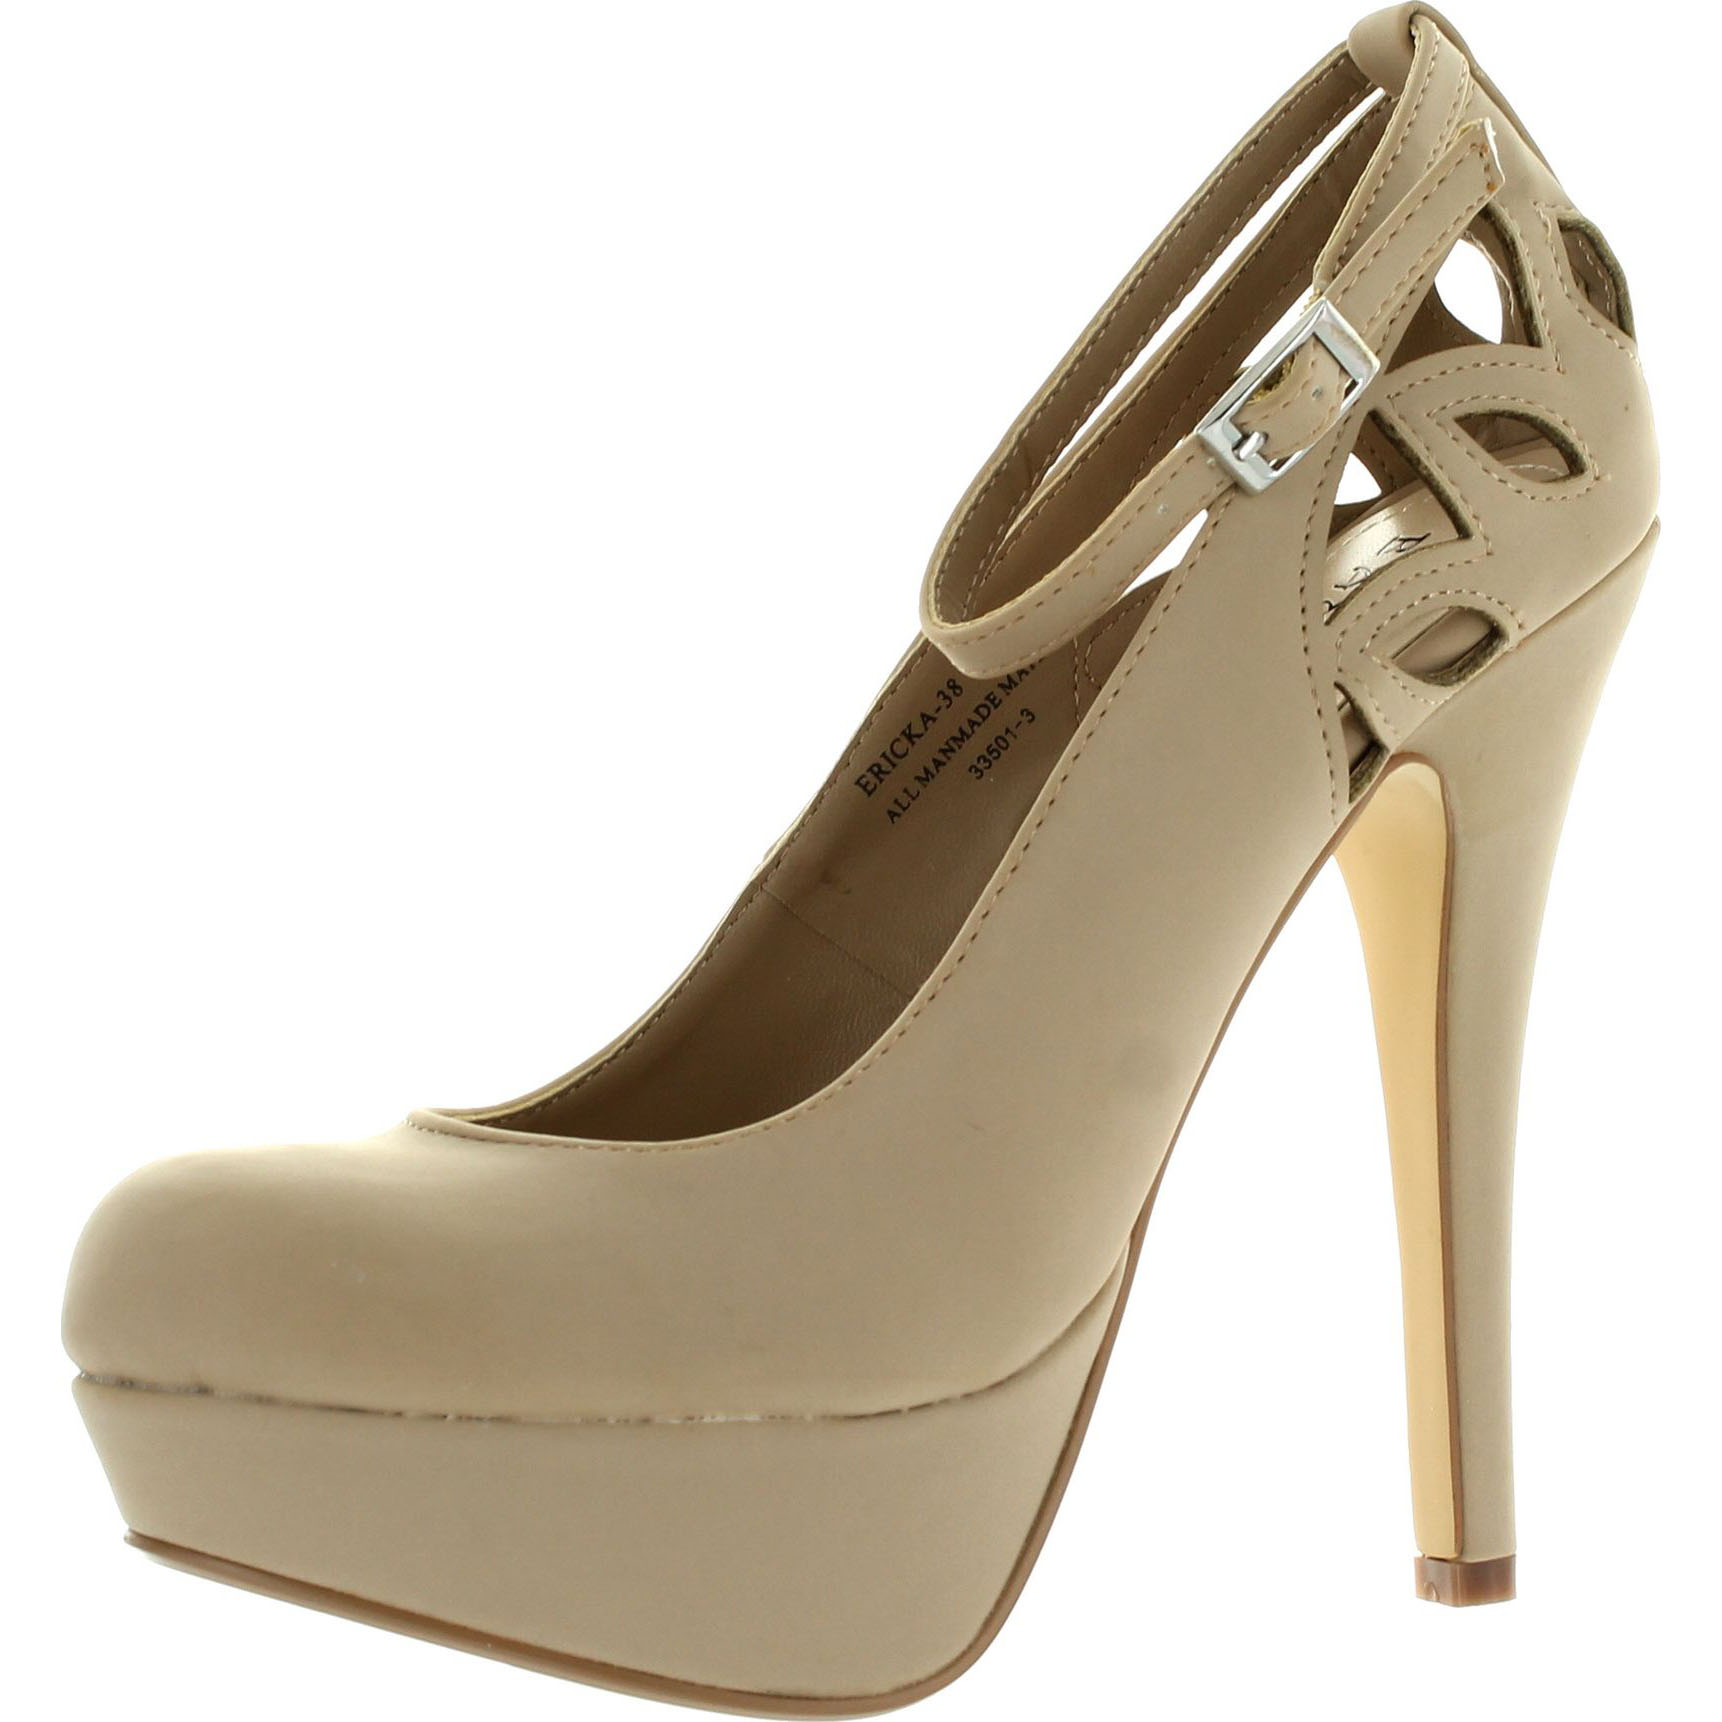 Bamboo Womens Ericka38 Cut Out Ankle Strap High Stiletto Heel Platform Pumps